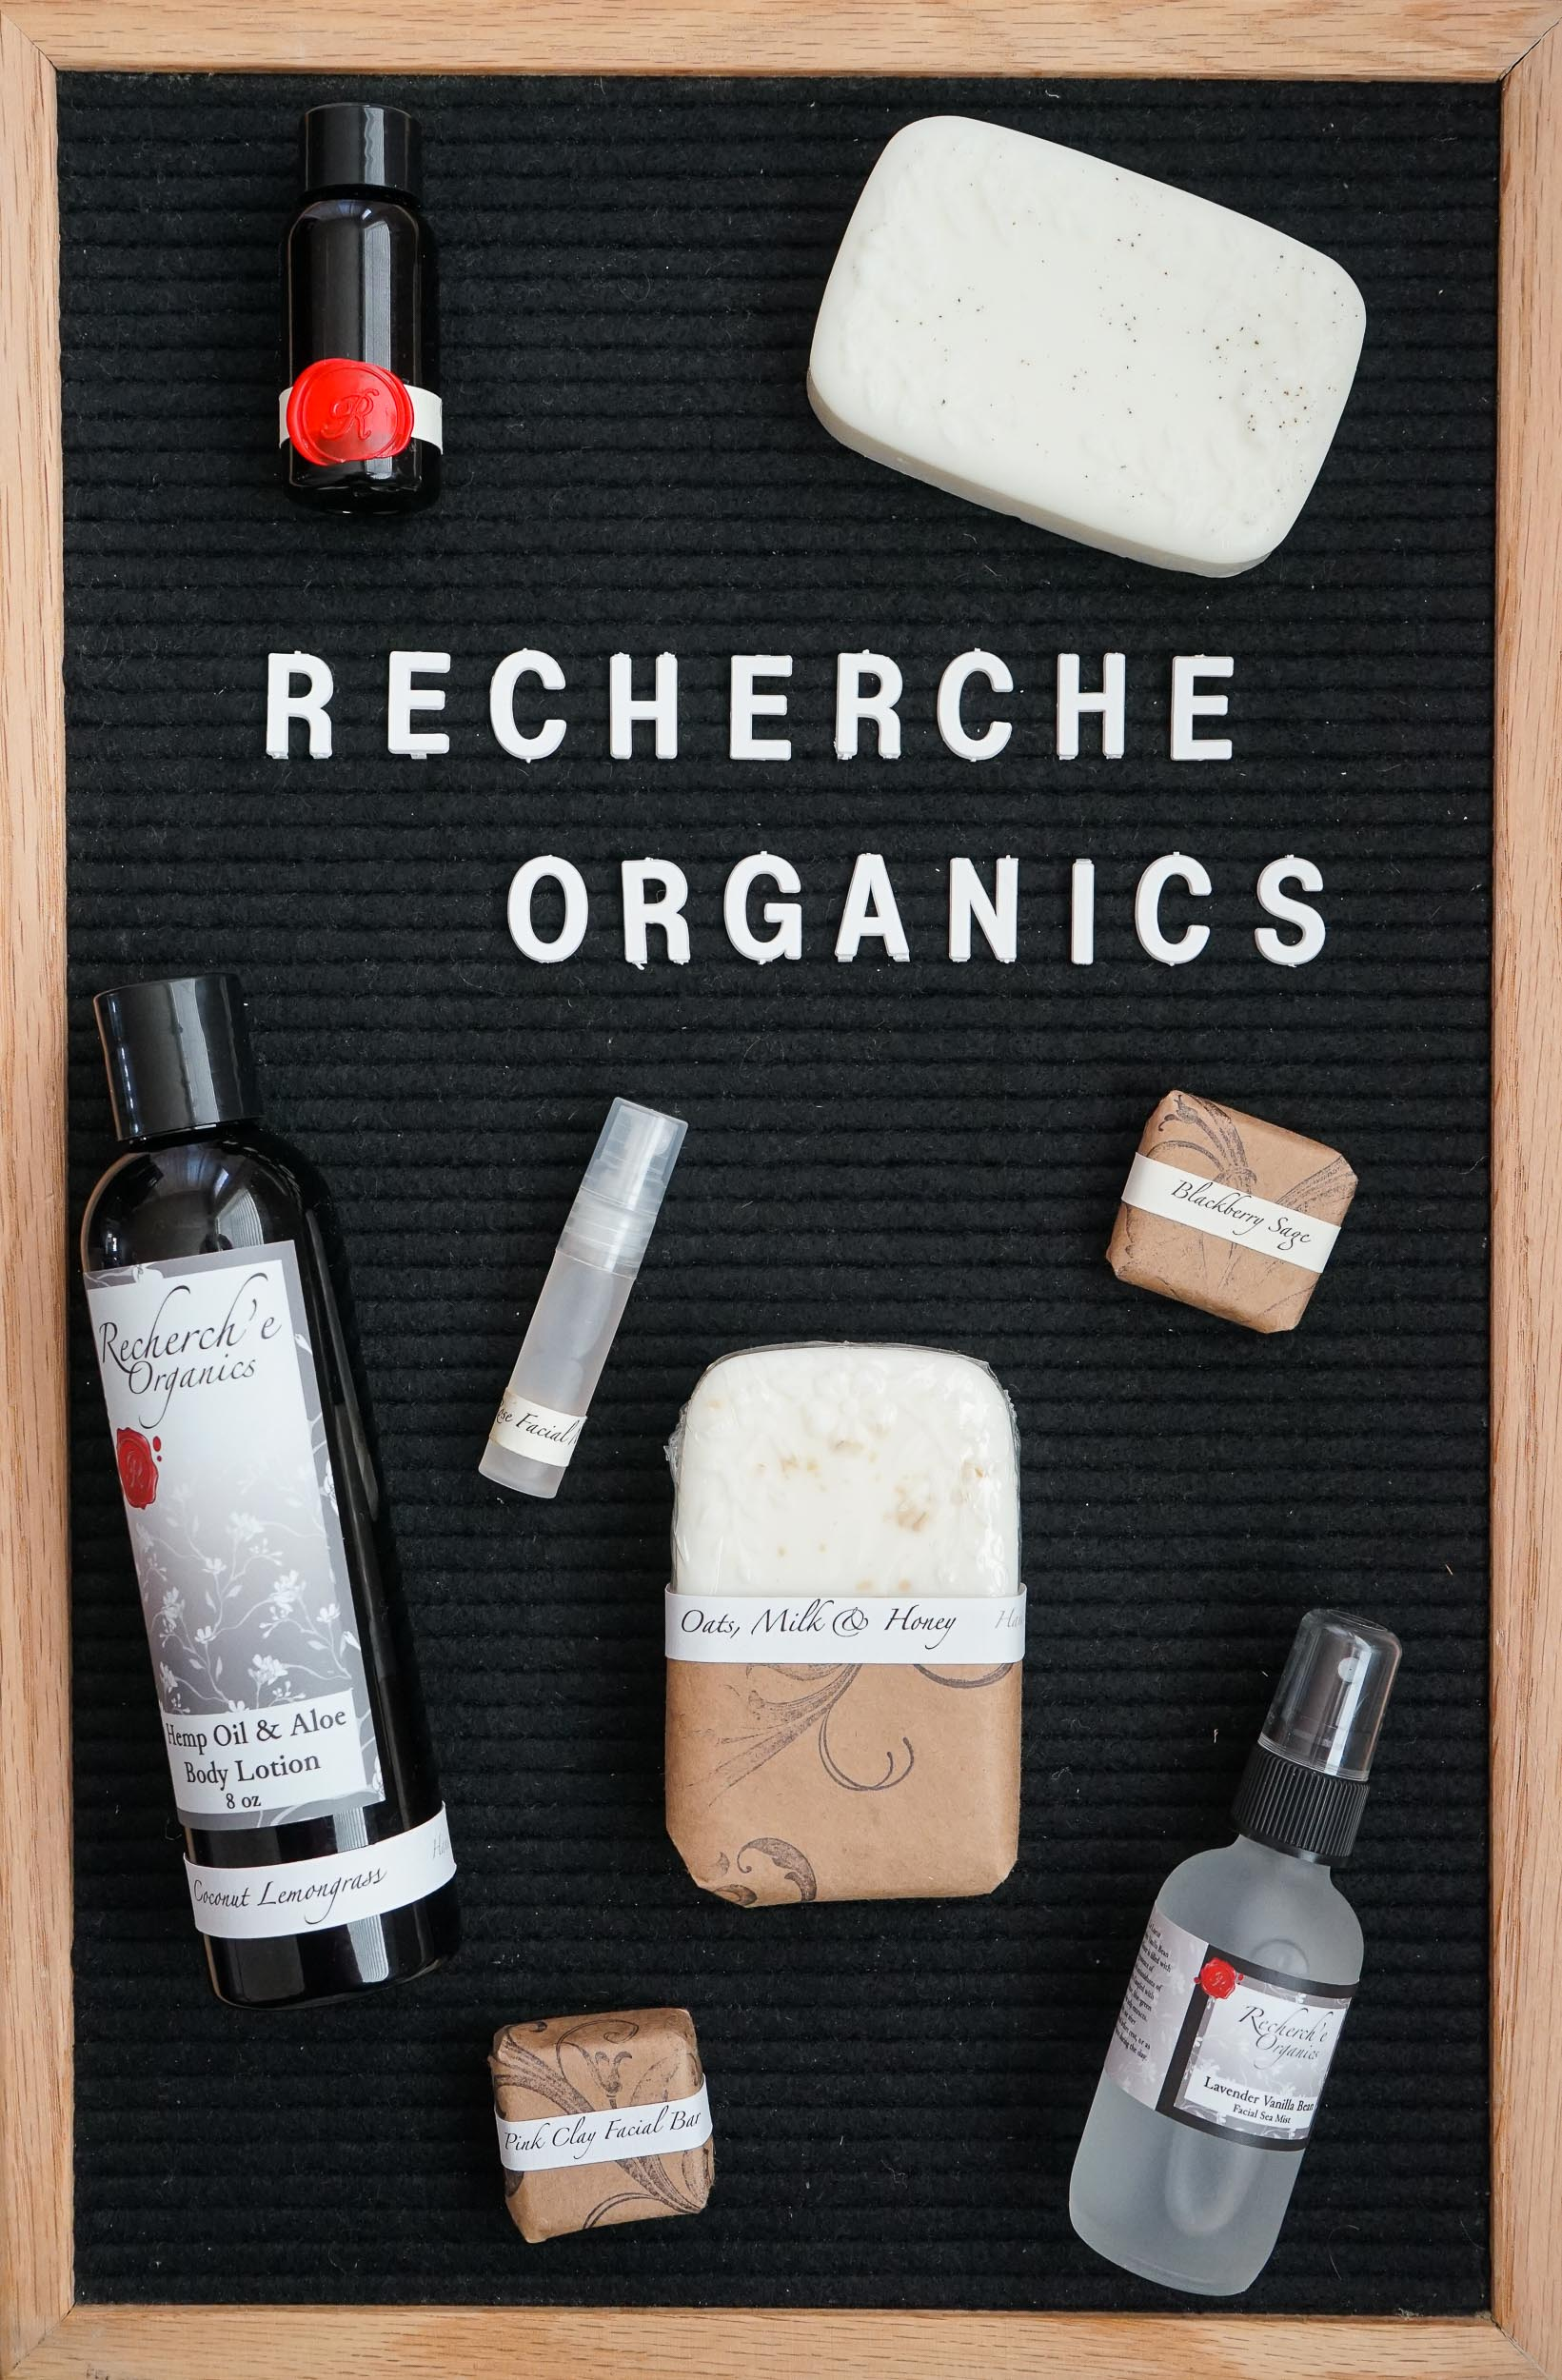 Recherch'e Organics is a small batch bath and body care company that focuses on GMO free, parabin free, petroleum free products that believes in the use of organic, C/A certified organic ingredients, fair trade bulk ingredients and essential oil based scents.